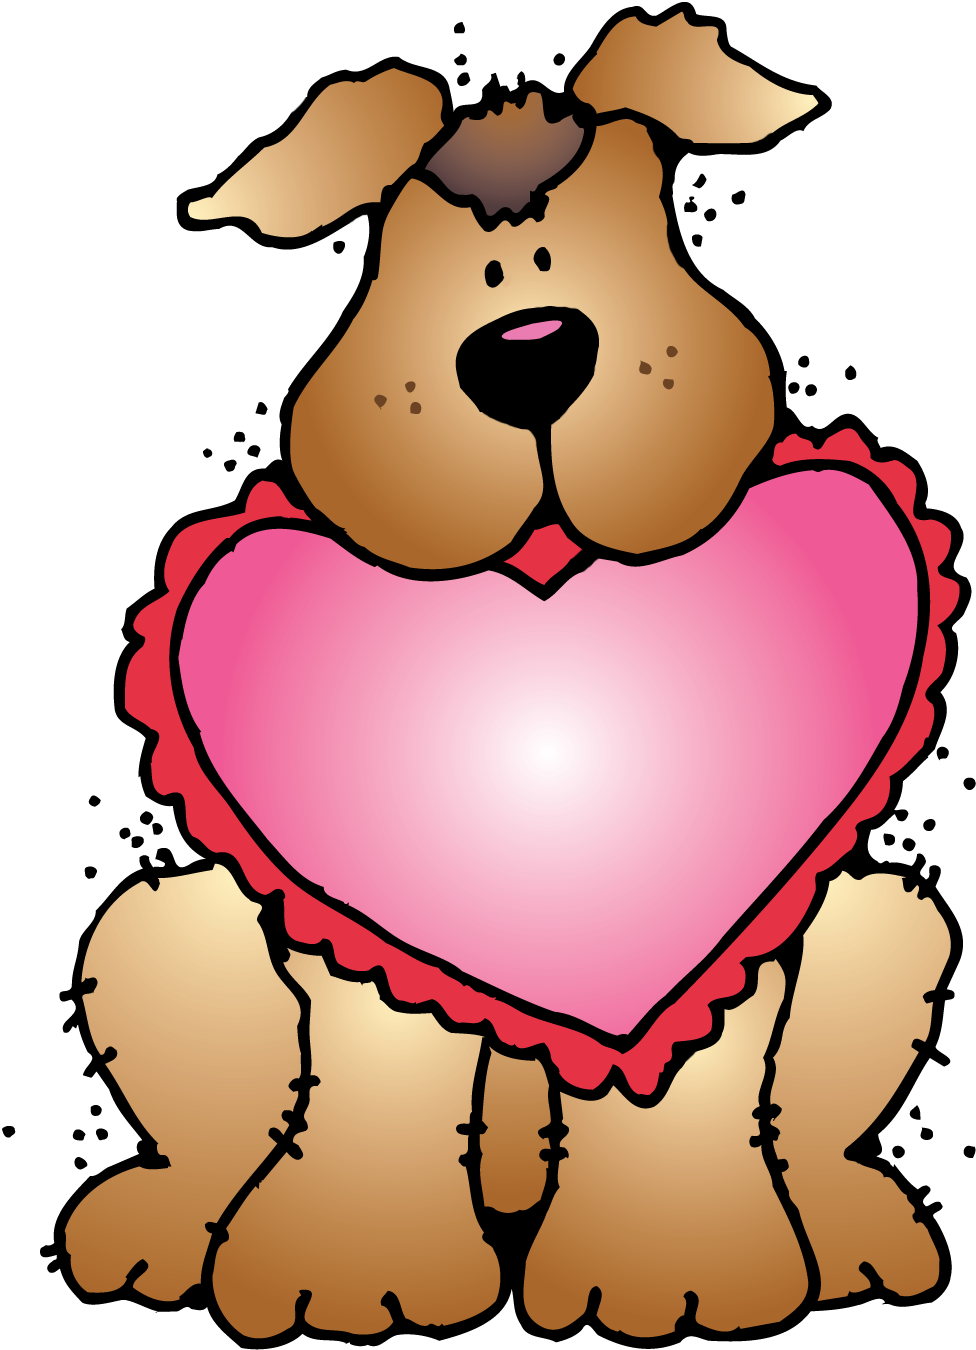 Talking dog clipart jpg free library So many fun things planned for Valentine's day on Thursday. However ... jpg free library